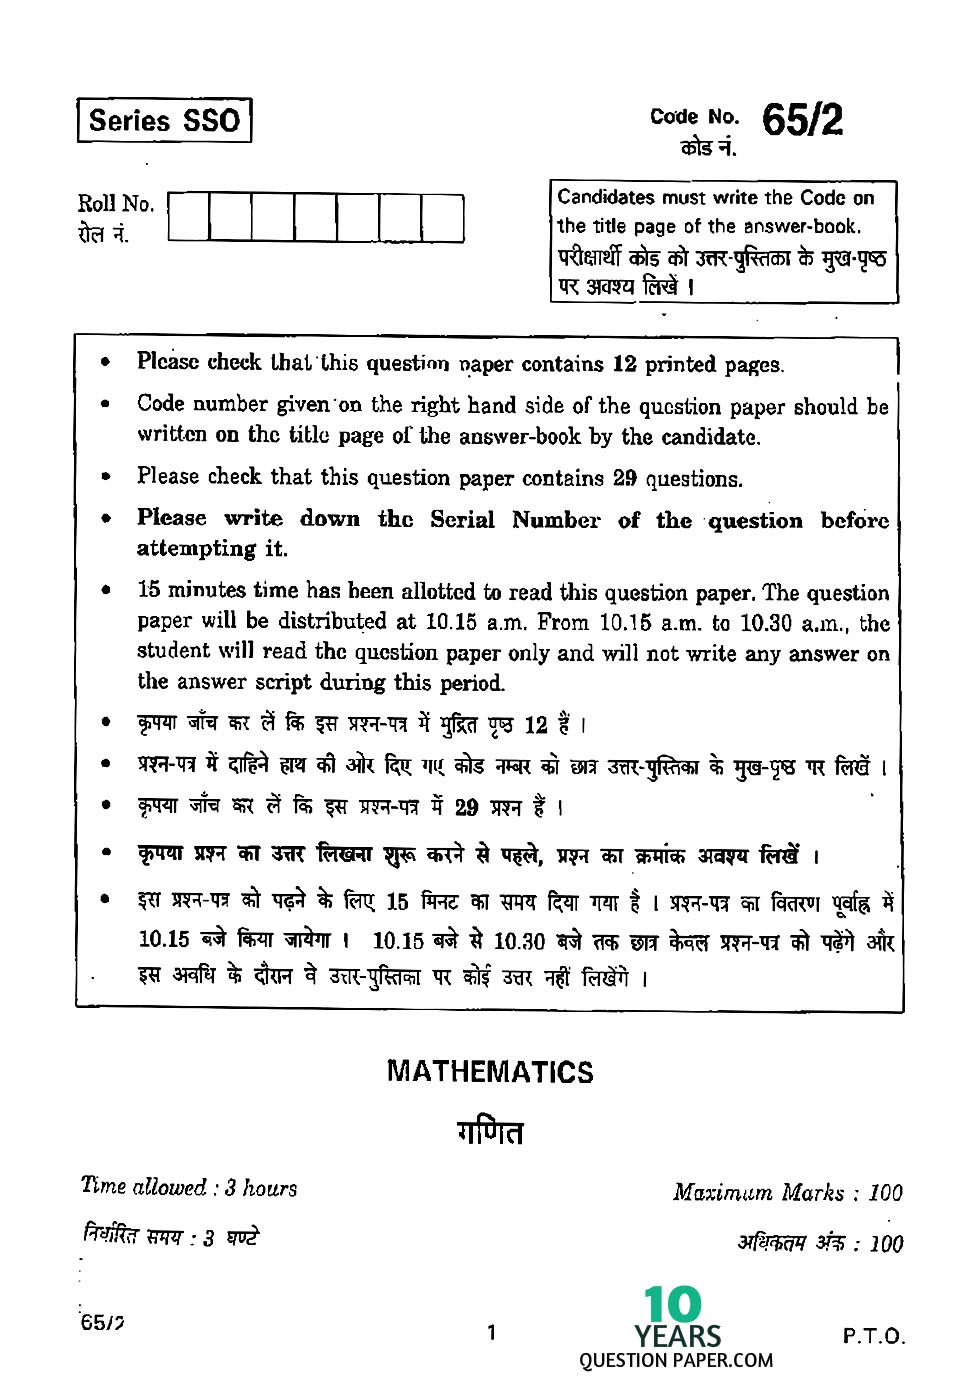 cbse class 12th 2009 Mathematics question paper